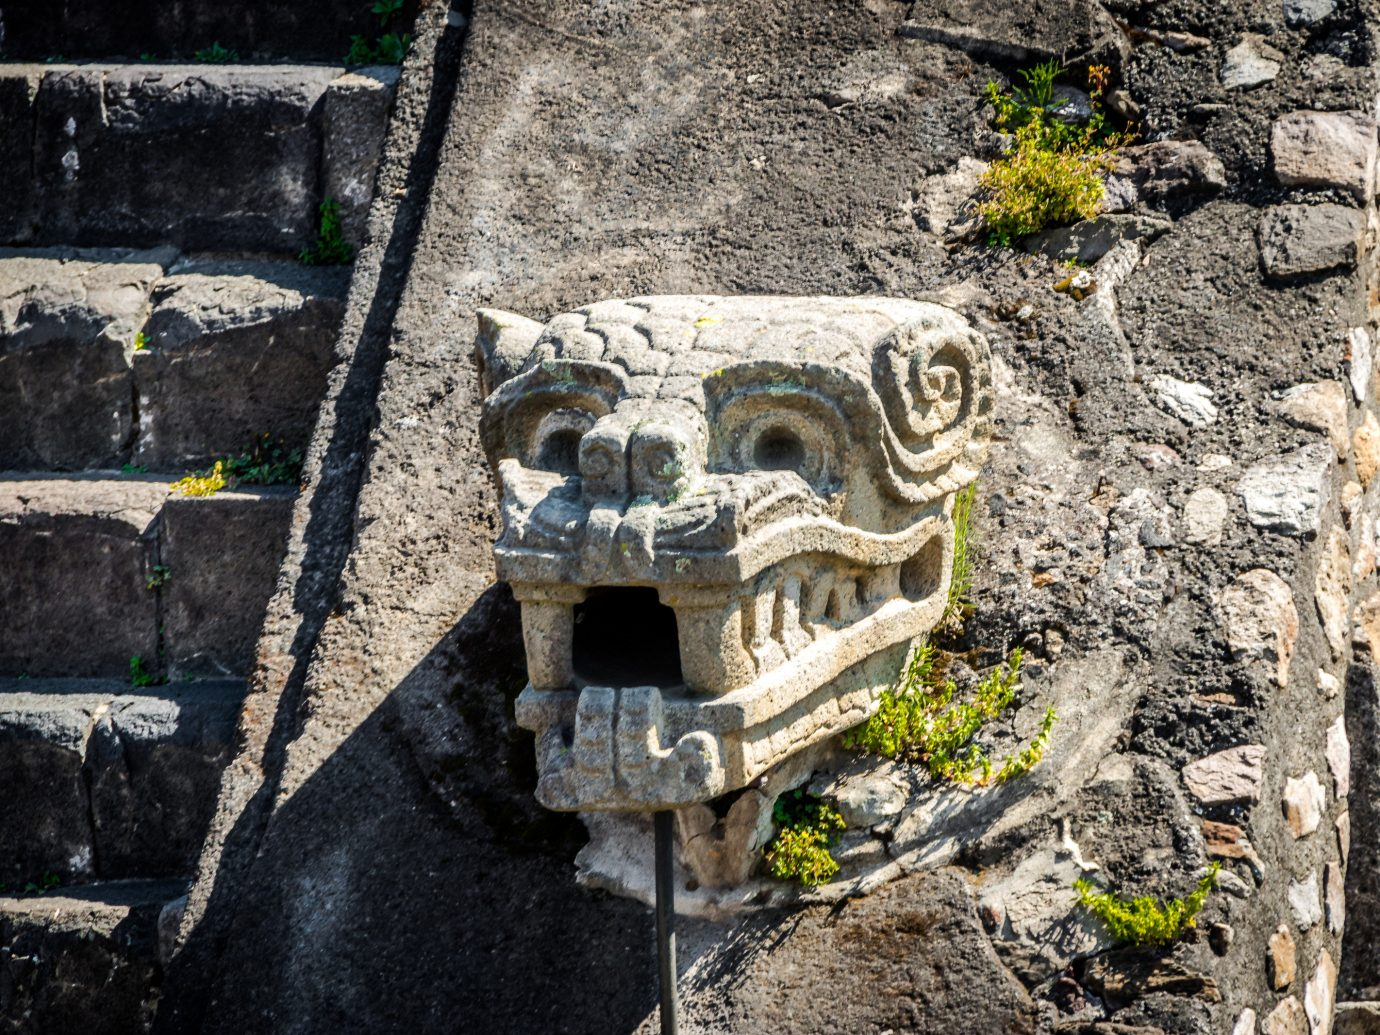 Arts + Culture Mexico City Travel Tips Trip Ideas archaeological site Ruins ancient history stone carving sculpture carving temple rock history grass landscape